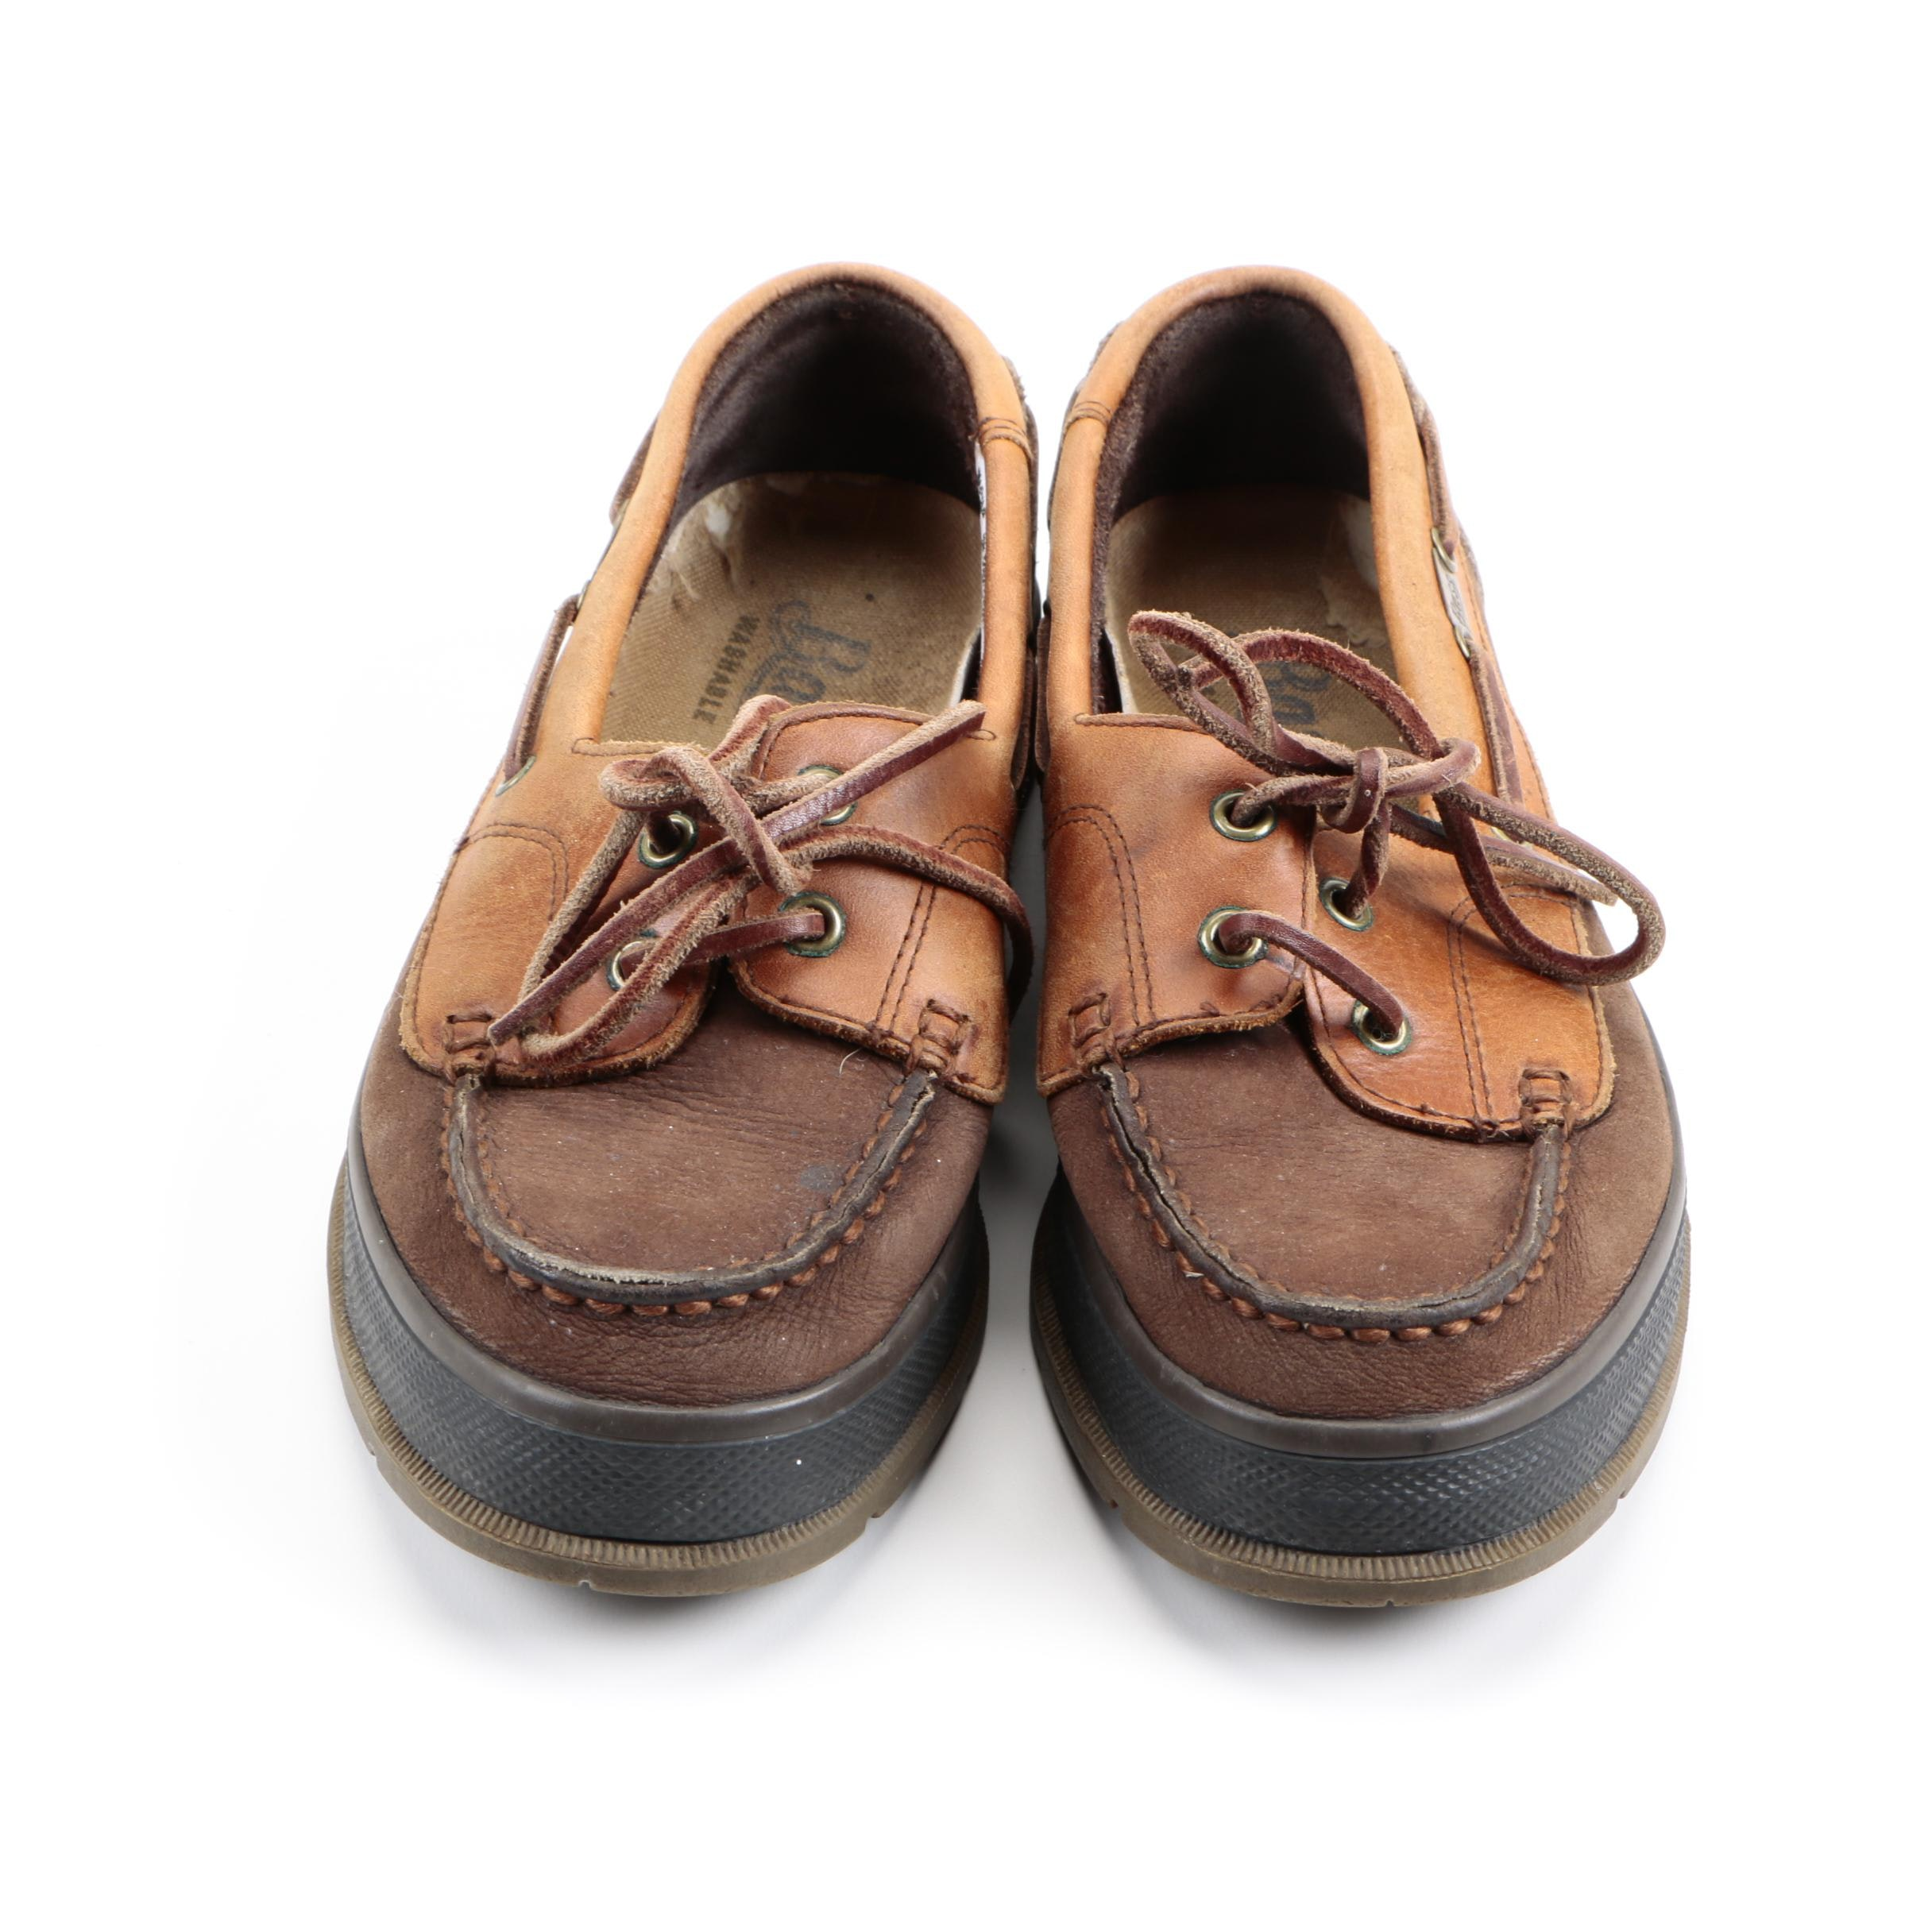 Women's Bass Leather Boat Shoes